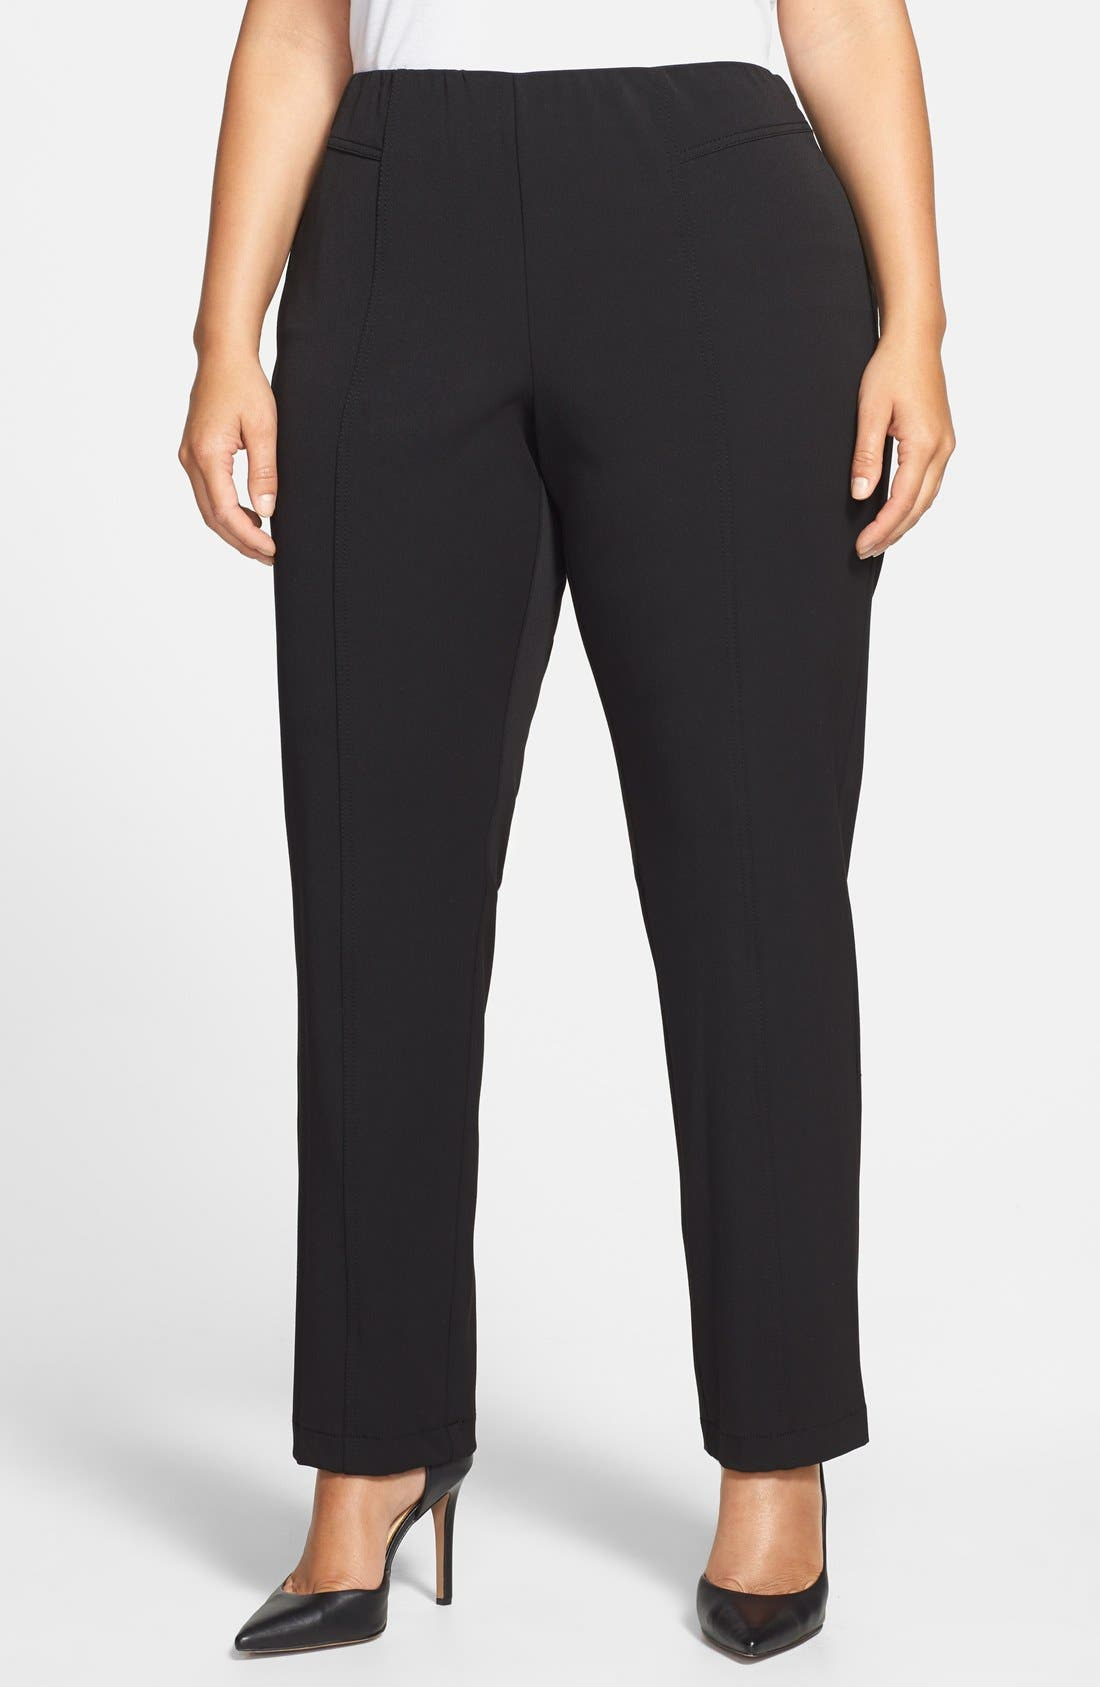 Vince Camuto Seam Detail Pants (Plus Size)